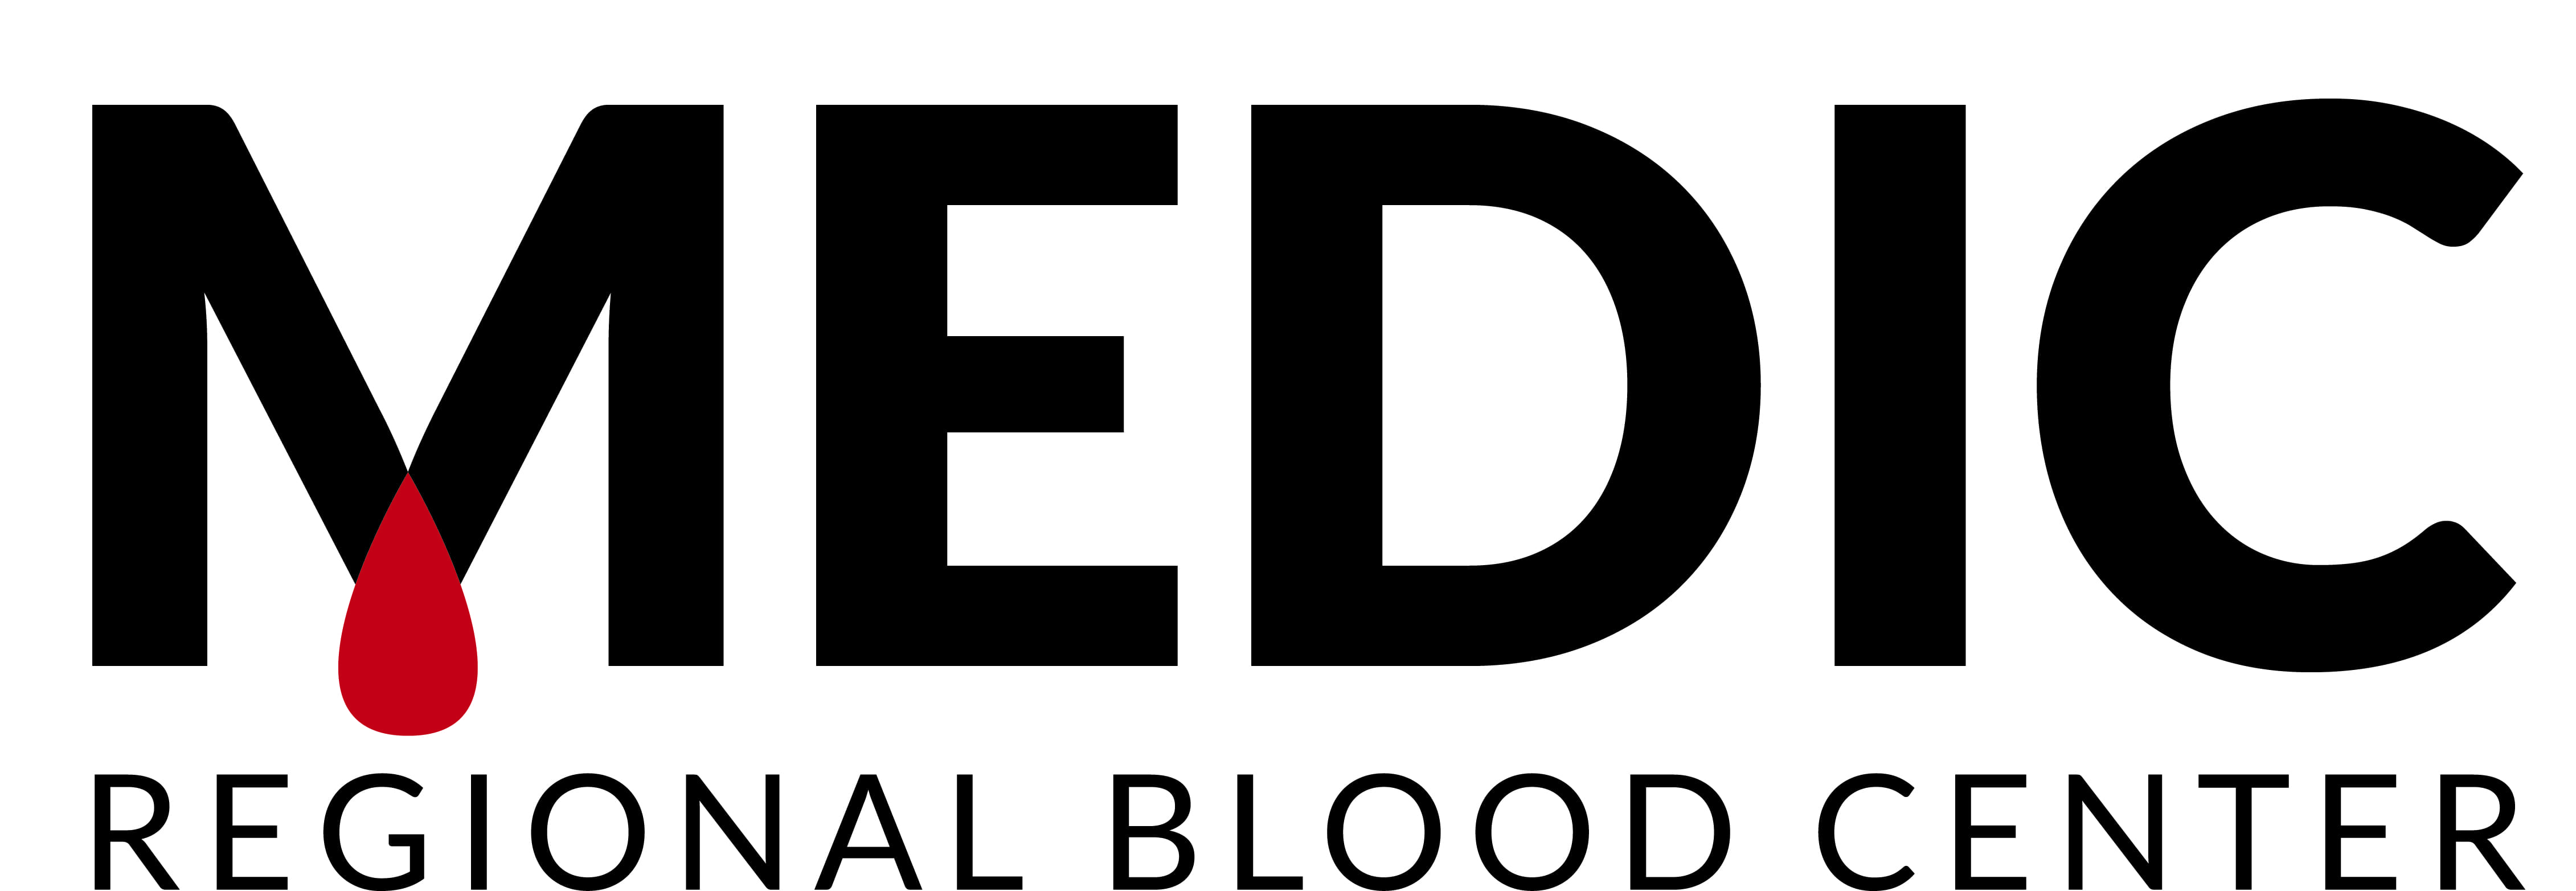 MEDIC Regional Blood Center Offering Ripley's Aquarium Tickets As Donation Incentive